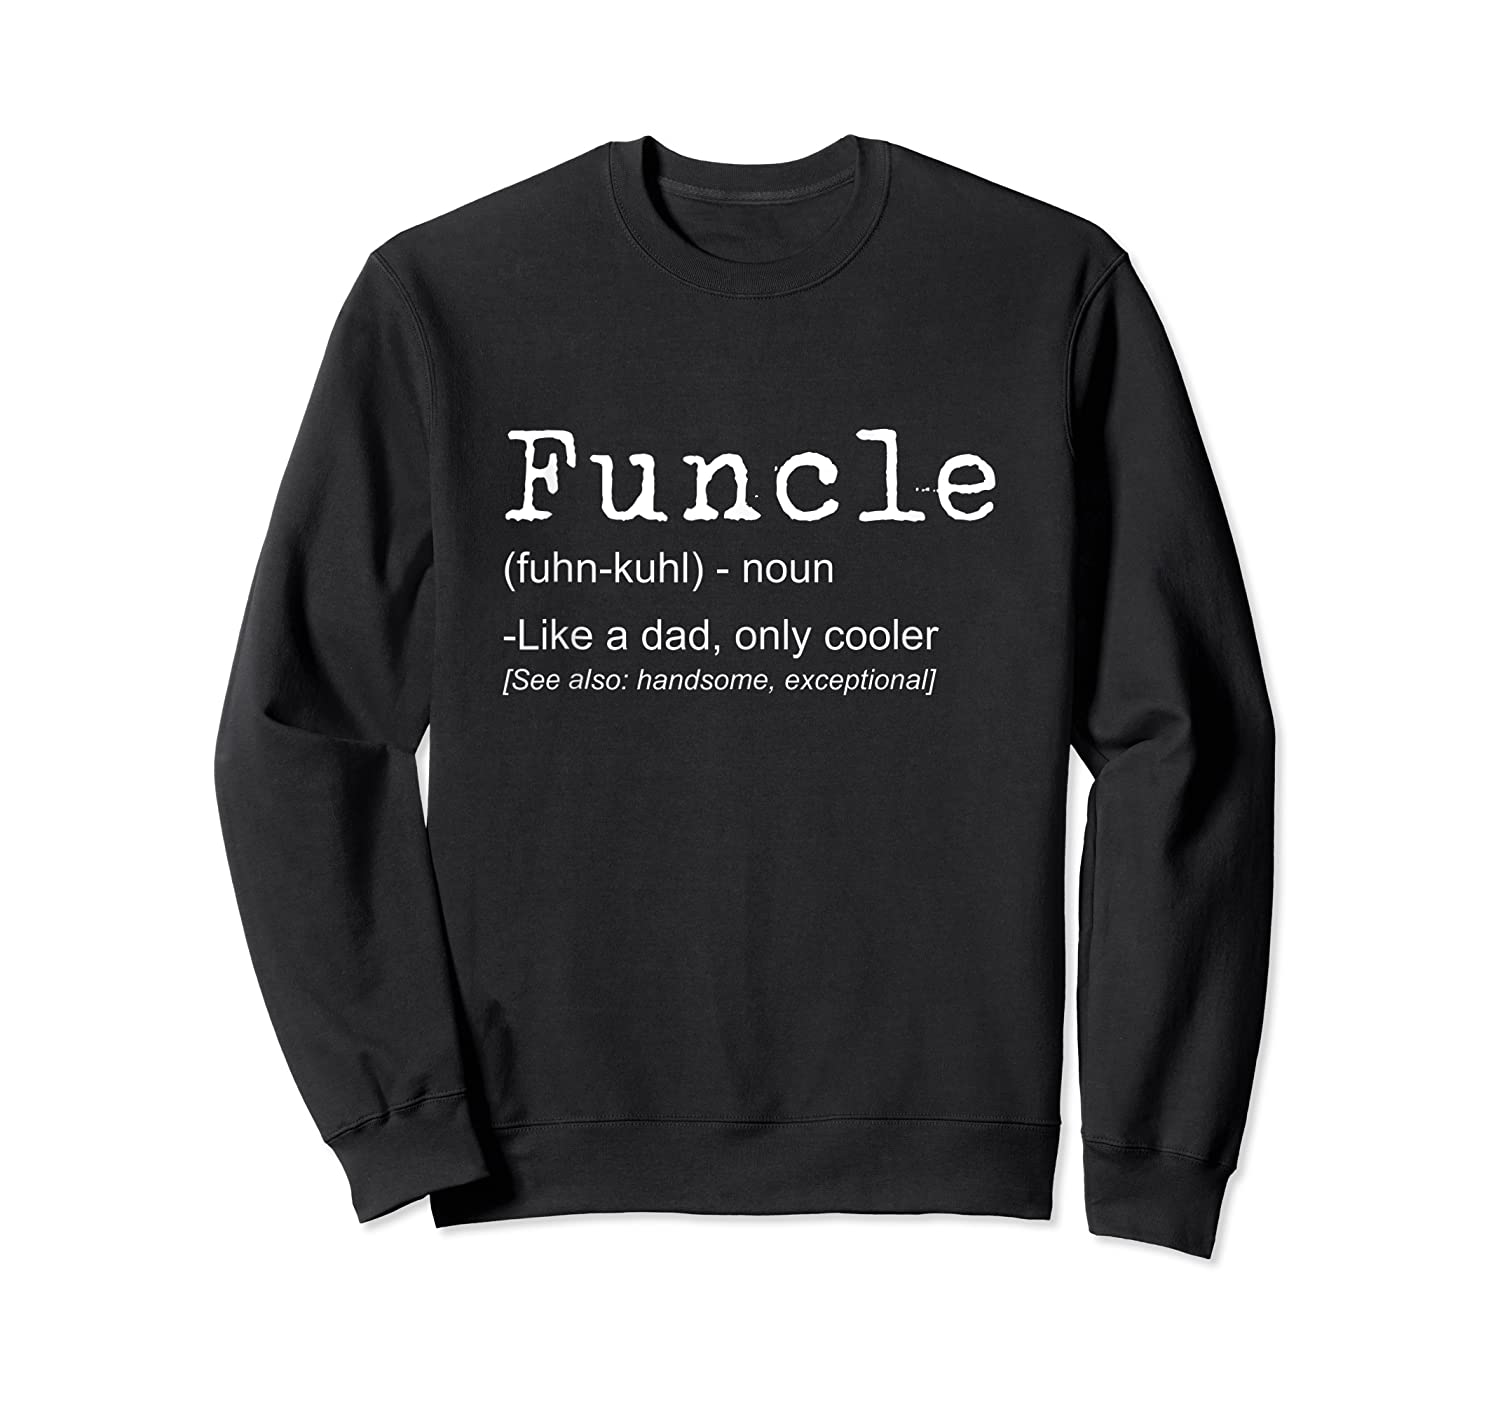 Funcle Definition Design Funny Joke Gift For Uncle Tank Top Shirts Crewneck Sweater